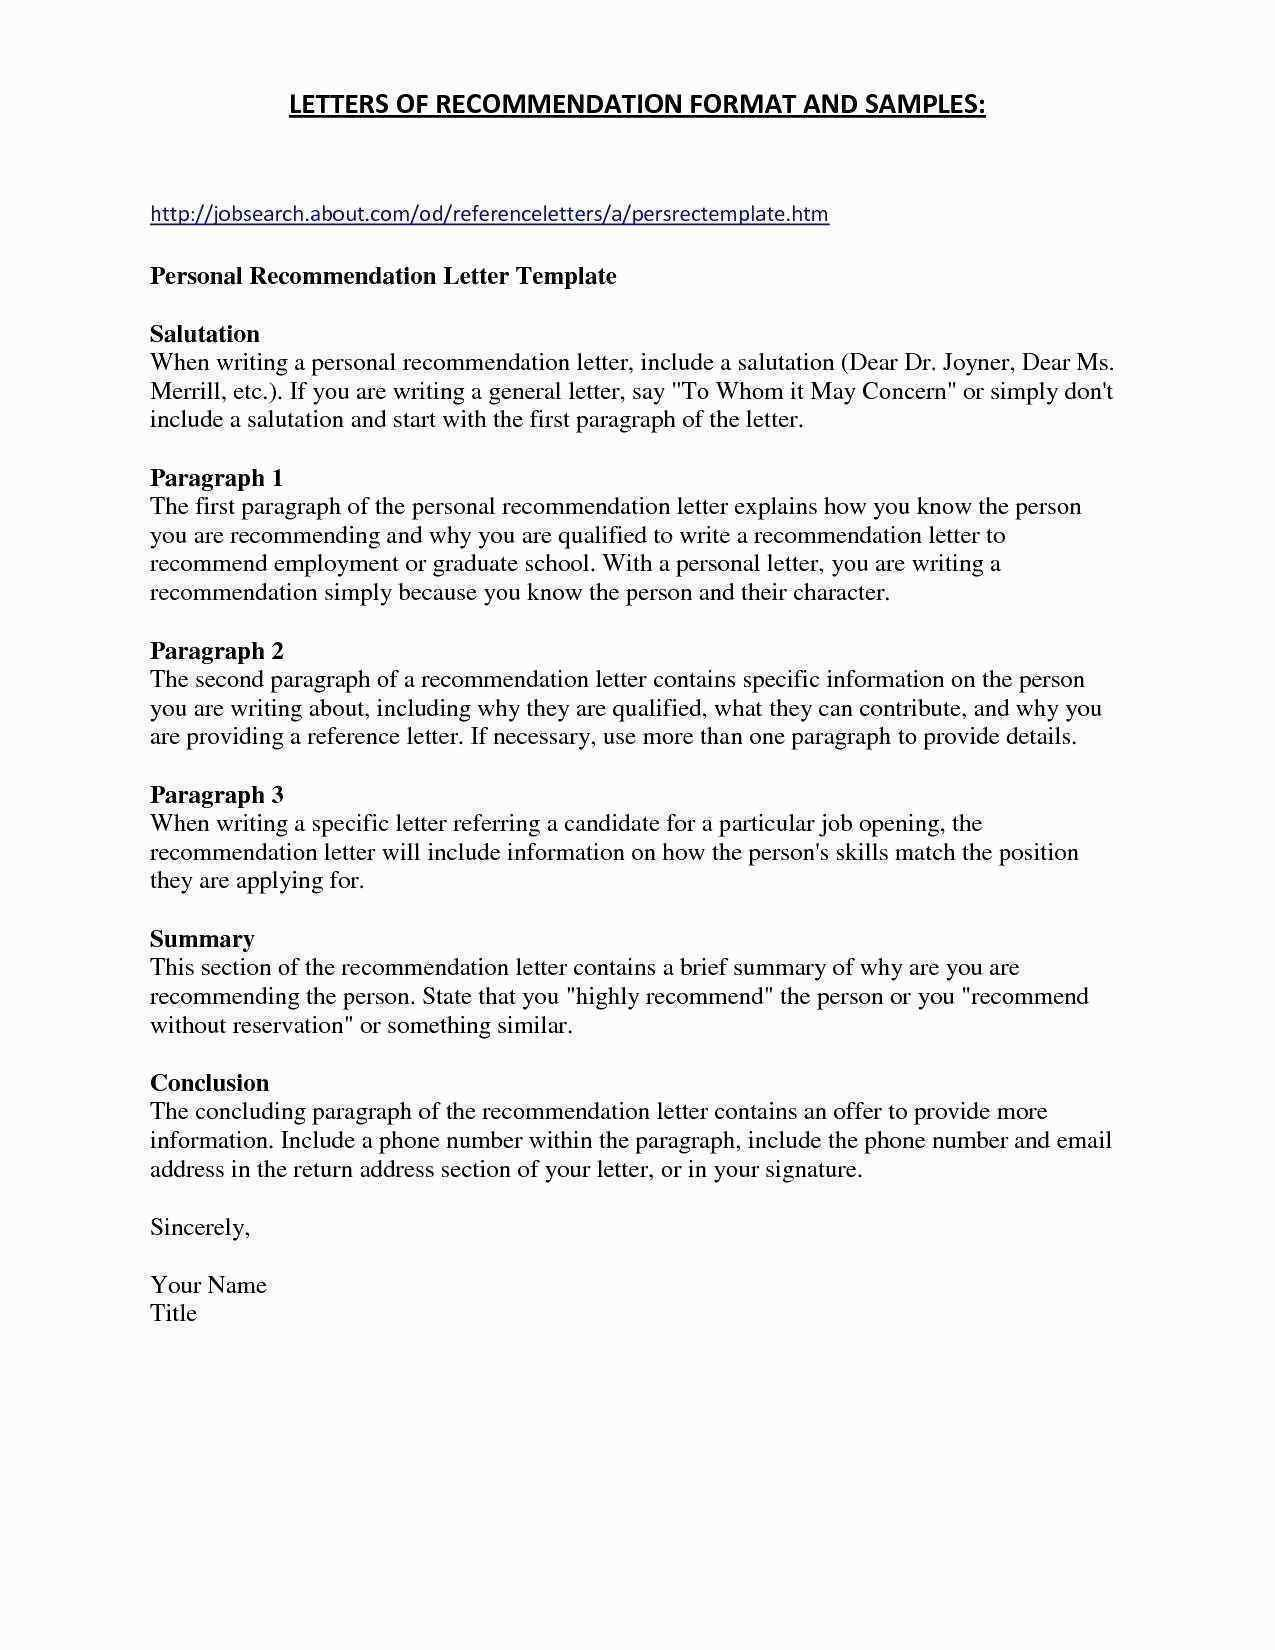 Hr Manager Resume Template - Letter Reference Hr Manager New Recruitment Manager Resume Sample